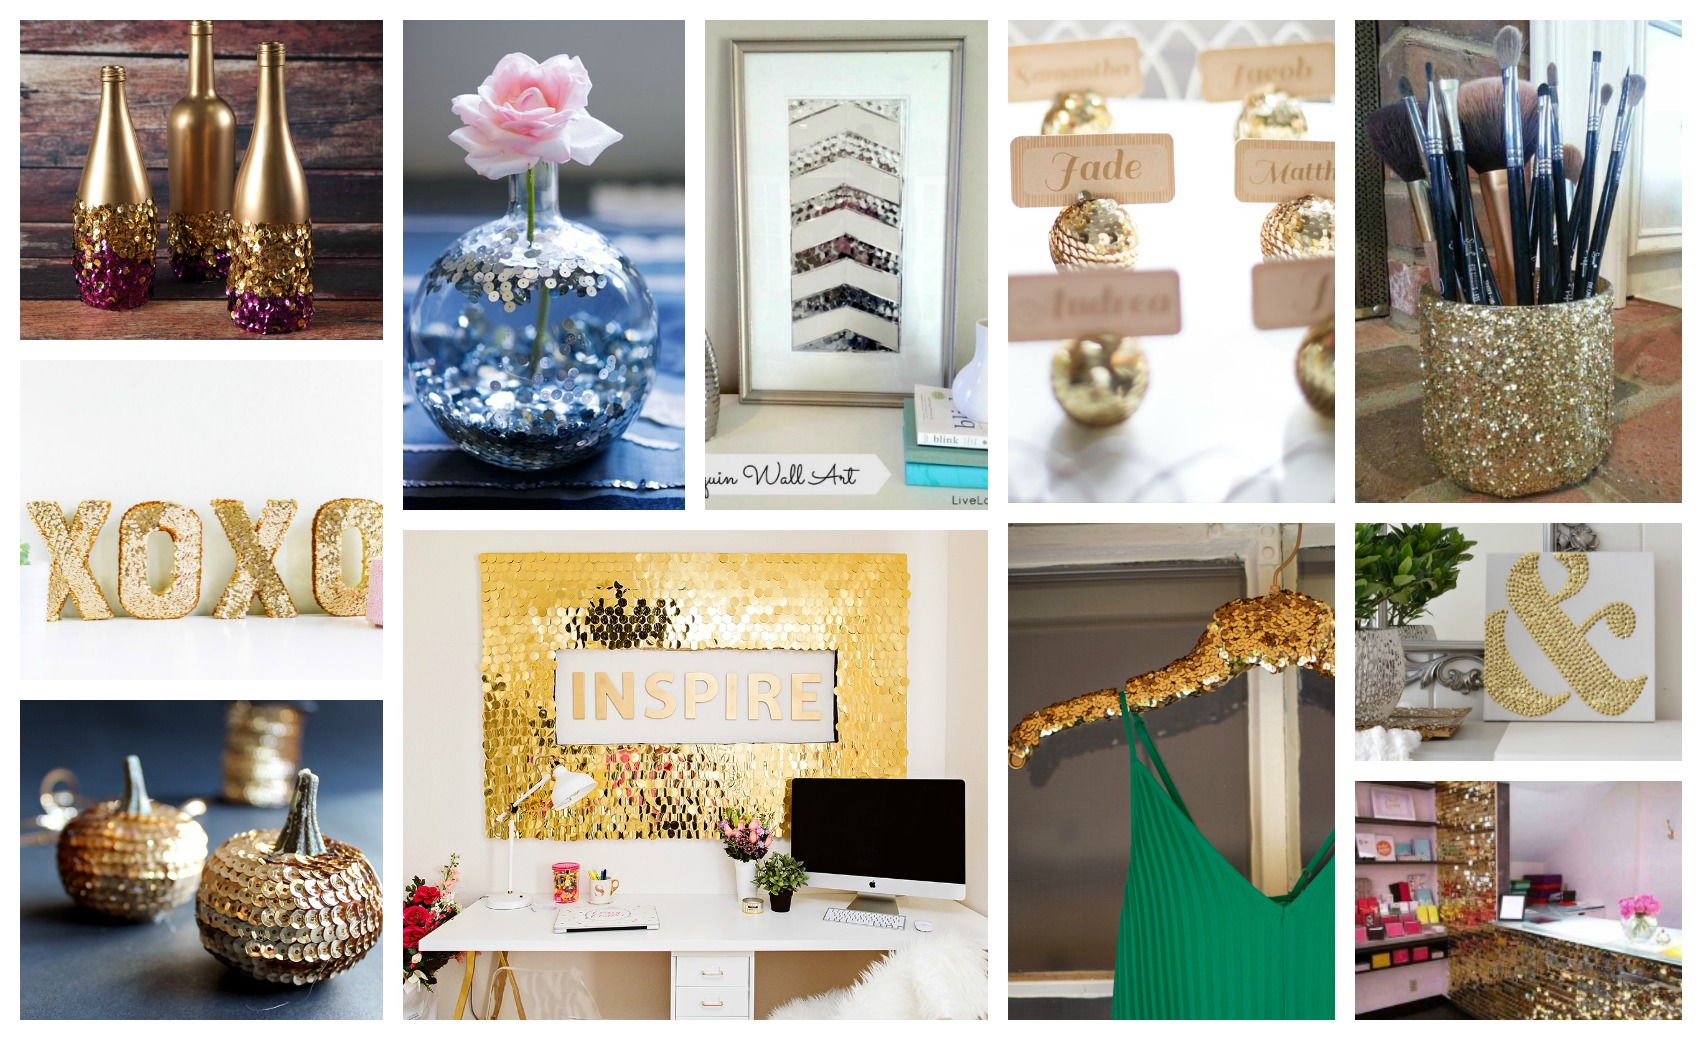 Sparkling DIY Sequins Designs That Will Make Your Home Shine